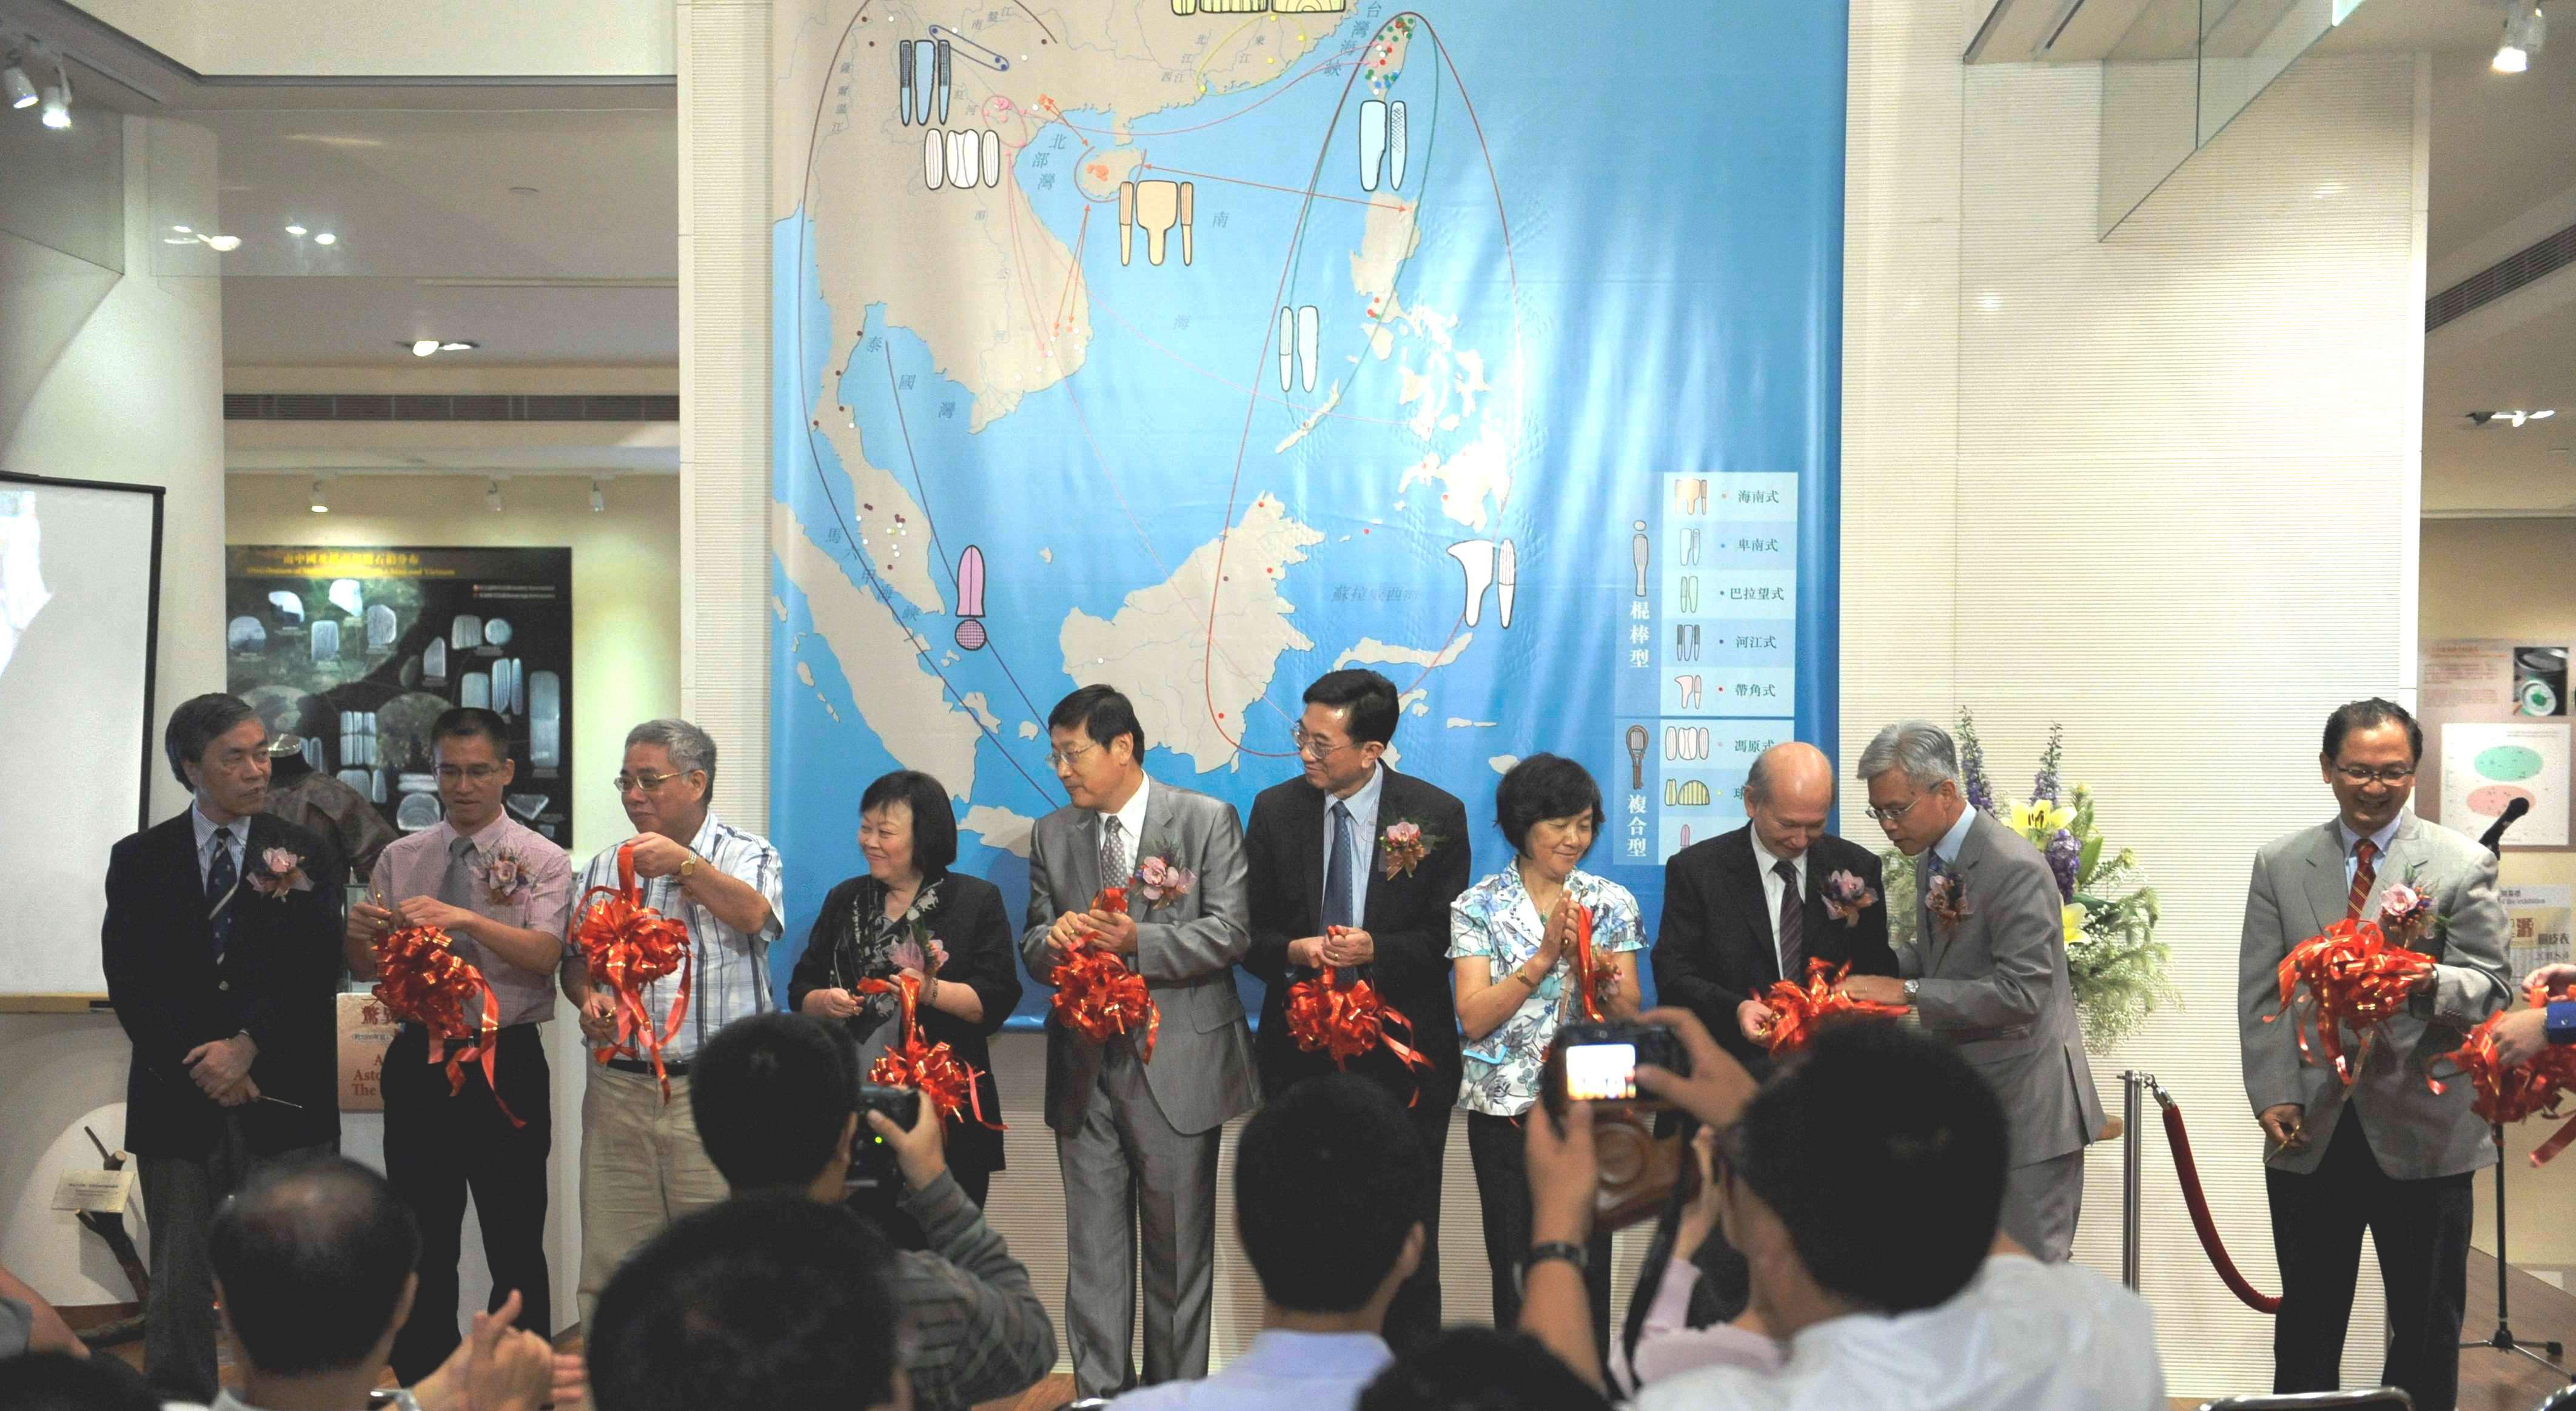 Ribbon cutting ceremony for the opening of 'Origins of Clothes - Barkcloth' Exhibition. From left: Prof. Peter Lam, Director, Art Museum, CUHK; Mr. He Bin, Director, Guangdong Provincial Institute of Relics and Archaeology; Prof. Ho Hon-wai, Vice-President, Institute of History and Philology, Academia Sinica; Prof. Hsiung Ping Chen, Faculty of Arts, CUHK; Prof. Wang Wei, Director, Institute of Archaeology, Chinese Academy of Social Sciences; Prof. Shun Kwong-loi, Director, Institute of Chinese Studies, CUHK; Ms. Su Guifen, Director General, Administration of Cultural Heritage of Guangdong Province; Prof. David Faure, CUHK-CCK Foundation Asia-Pacific Centre for Chinese Studies; Dr. Louis Ng Chi Wah, Assistant Director (Heritage and Museums) of Leisure and Cultural Services Department; and Prof. Tang Chung, Director, Centre for Chinese Archaeology and Art, CUHK